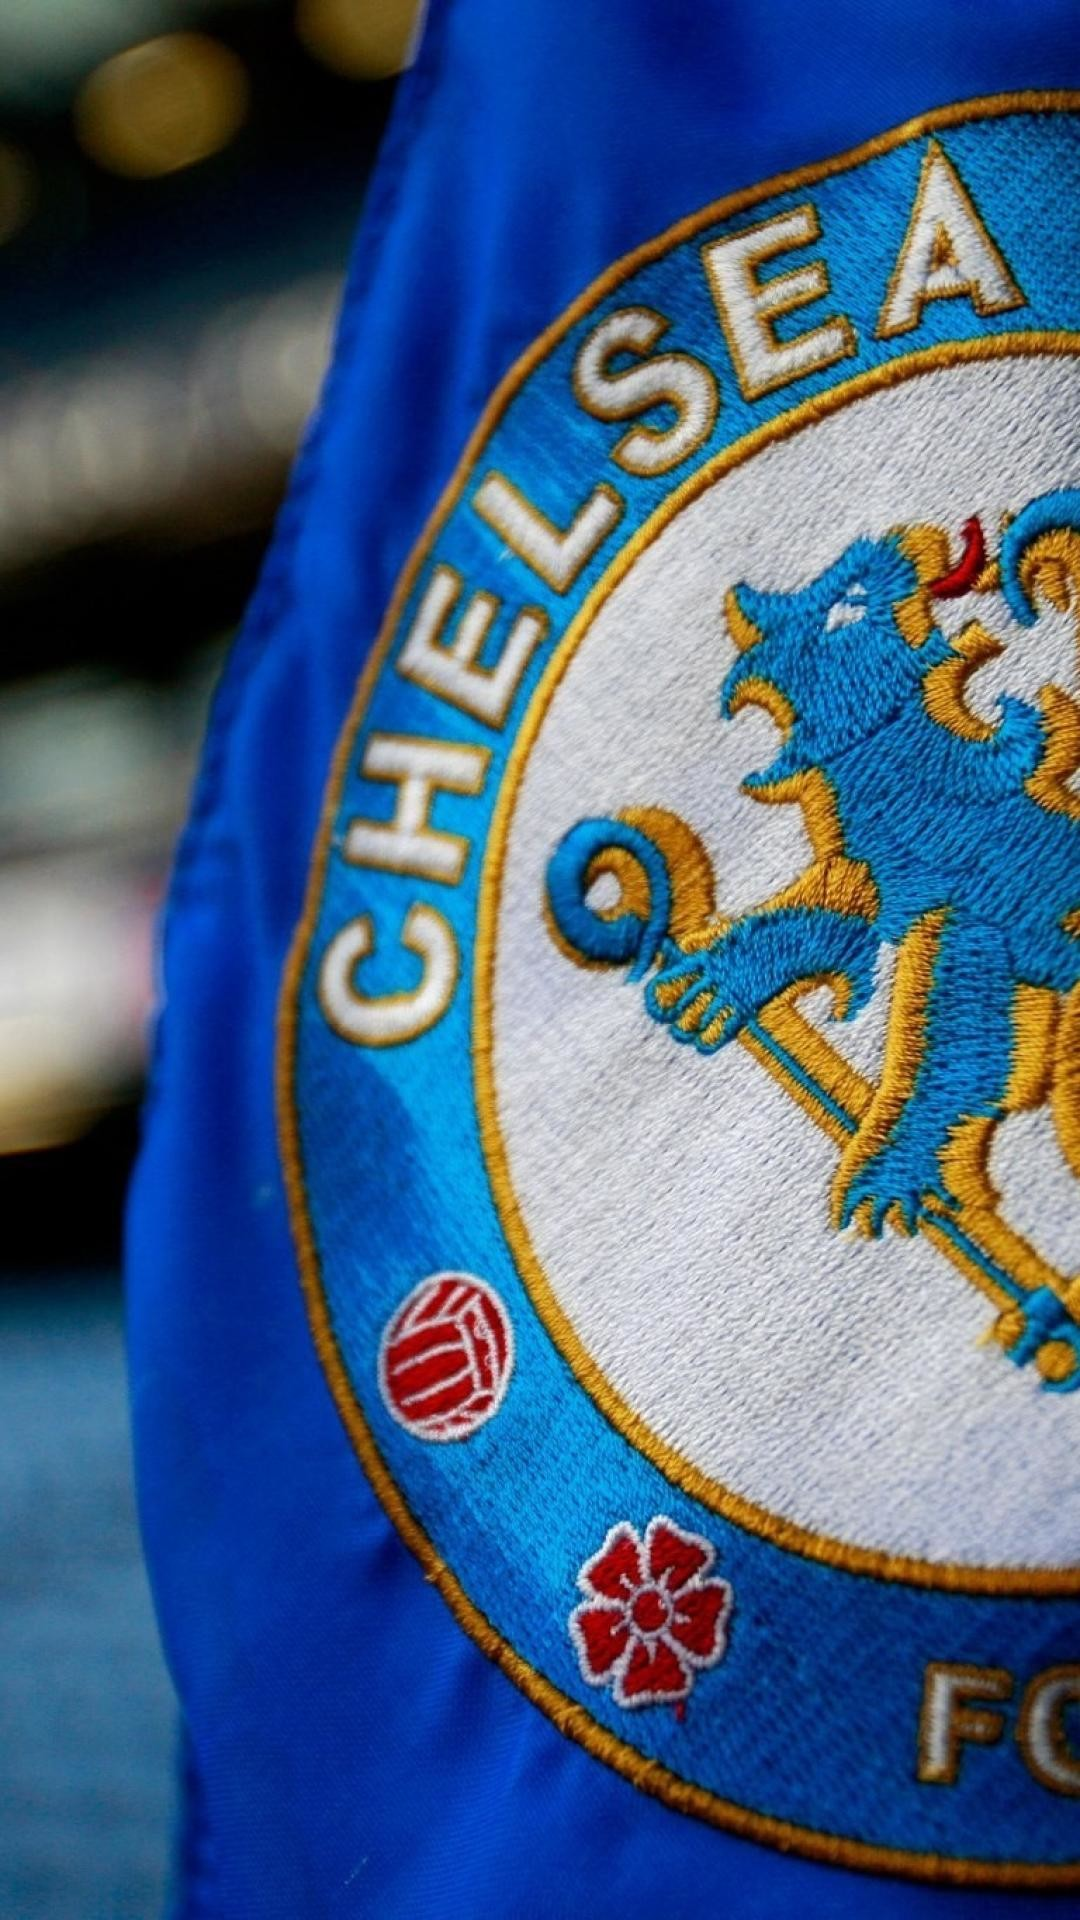 images) Wallpapers Chelsea 1080p (75+ HD